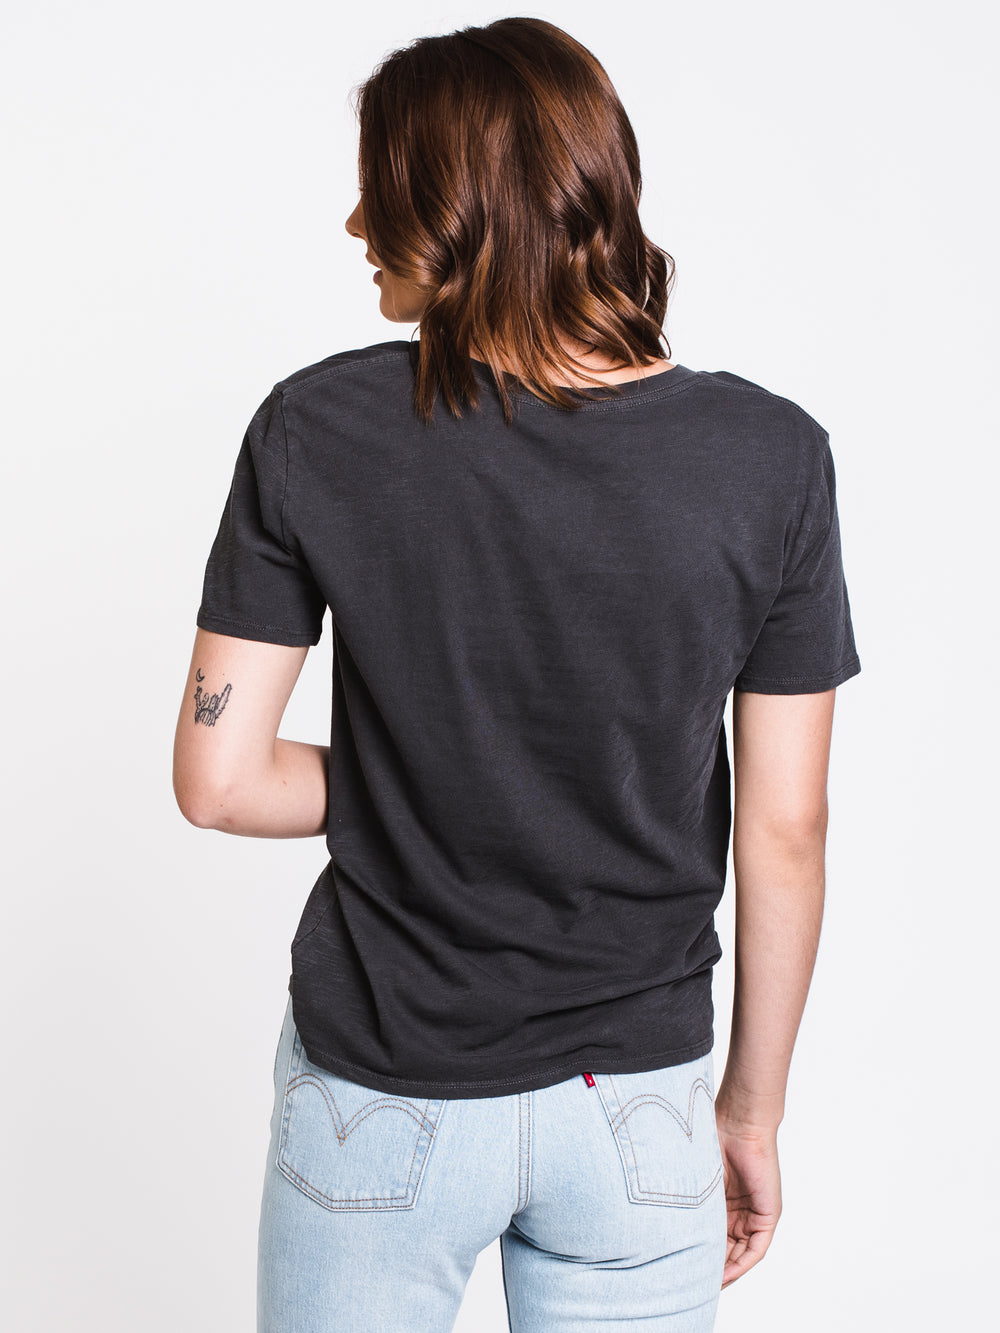 WOMENS STARDUST SHORT SLEEVE TEE - BLACK